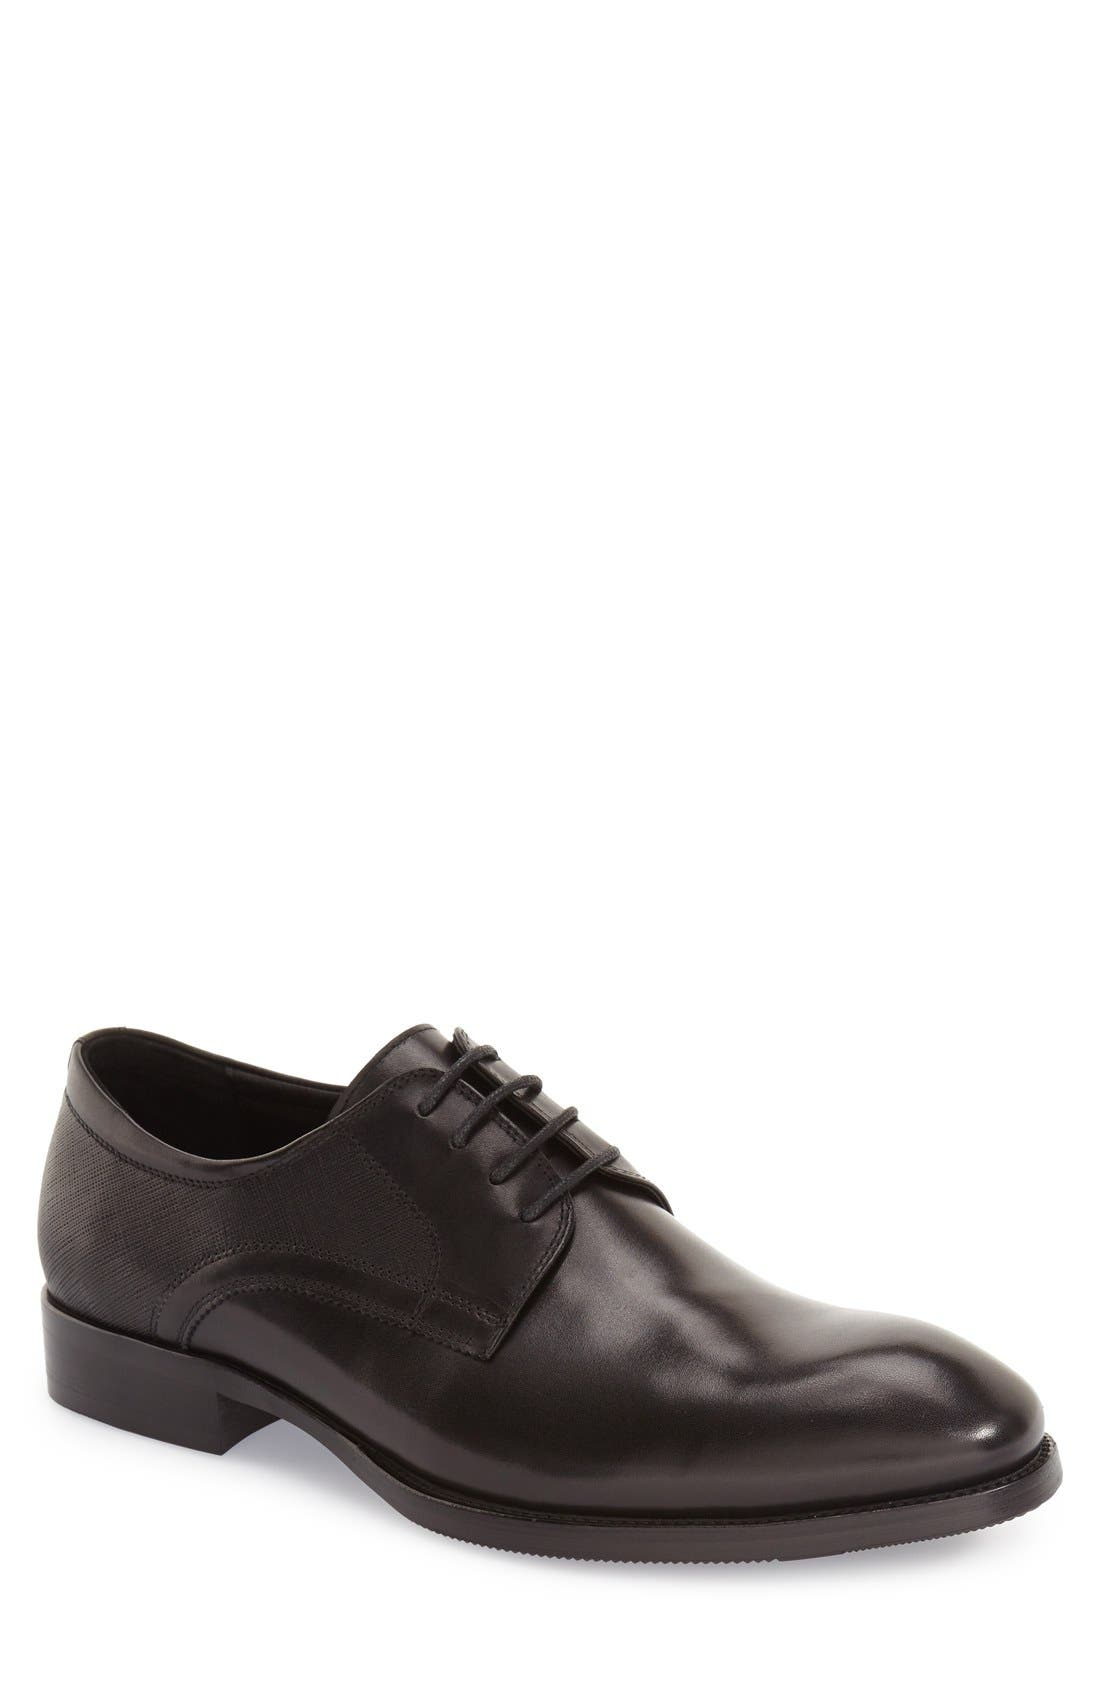 'Bruckner' Plain Toe Derby,                         Main,                         color, 001